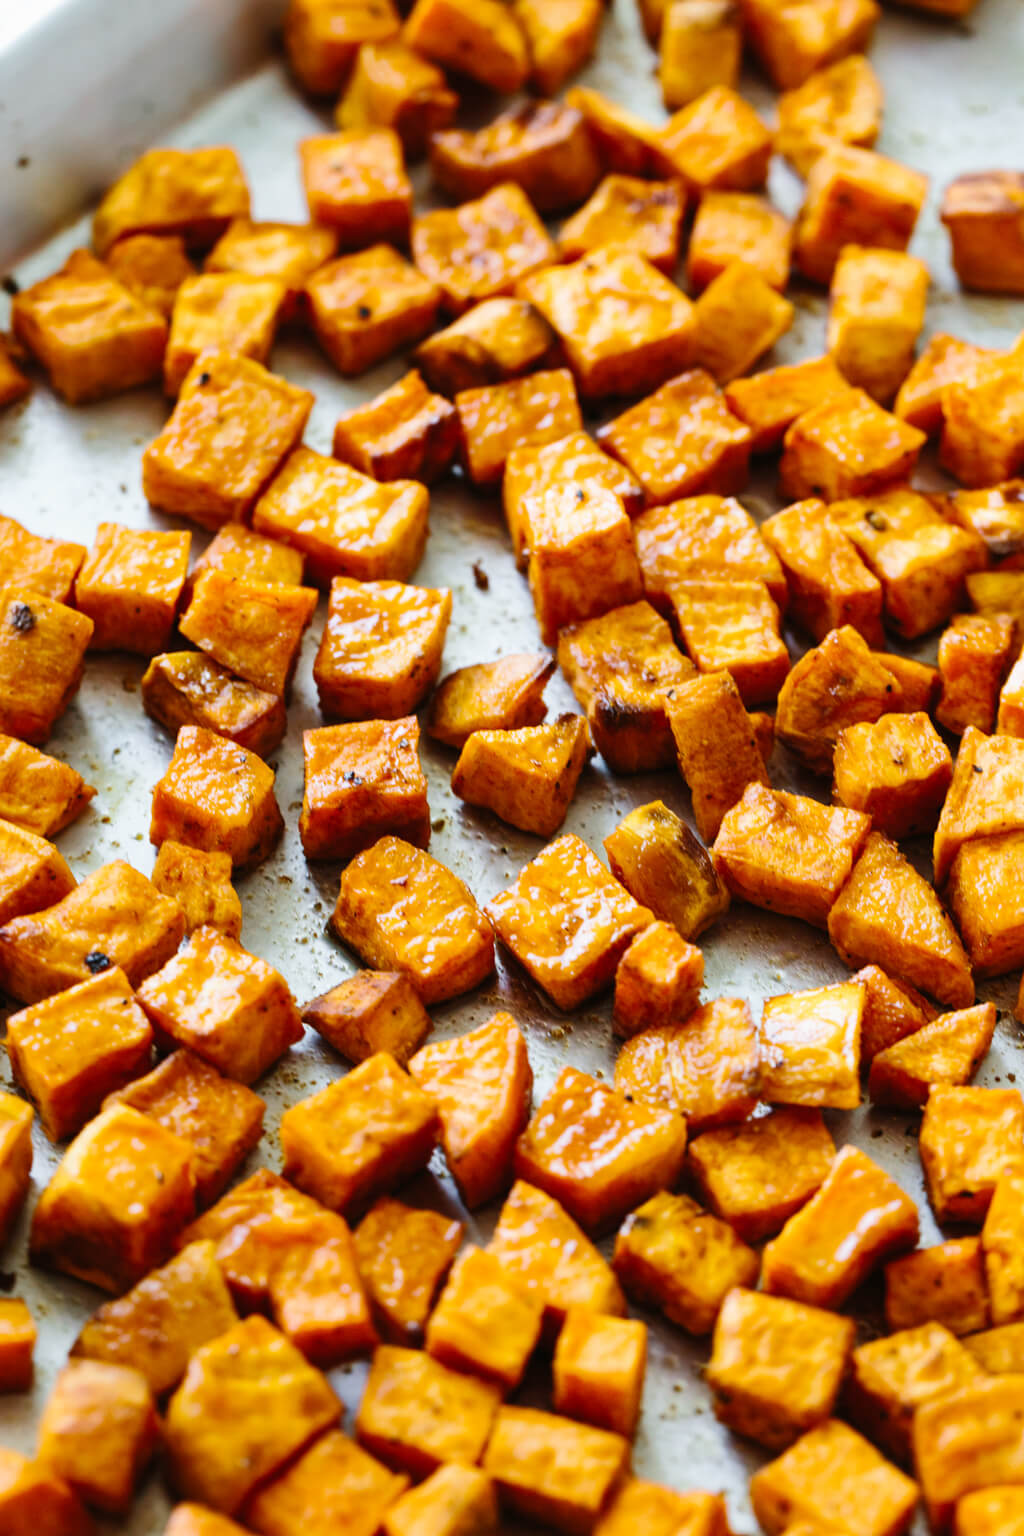 Roasted sweet potatoes on a sheet pan.